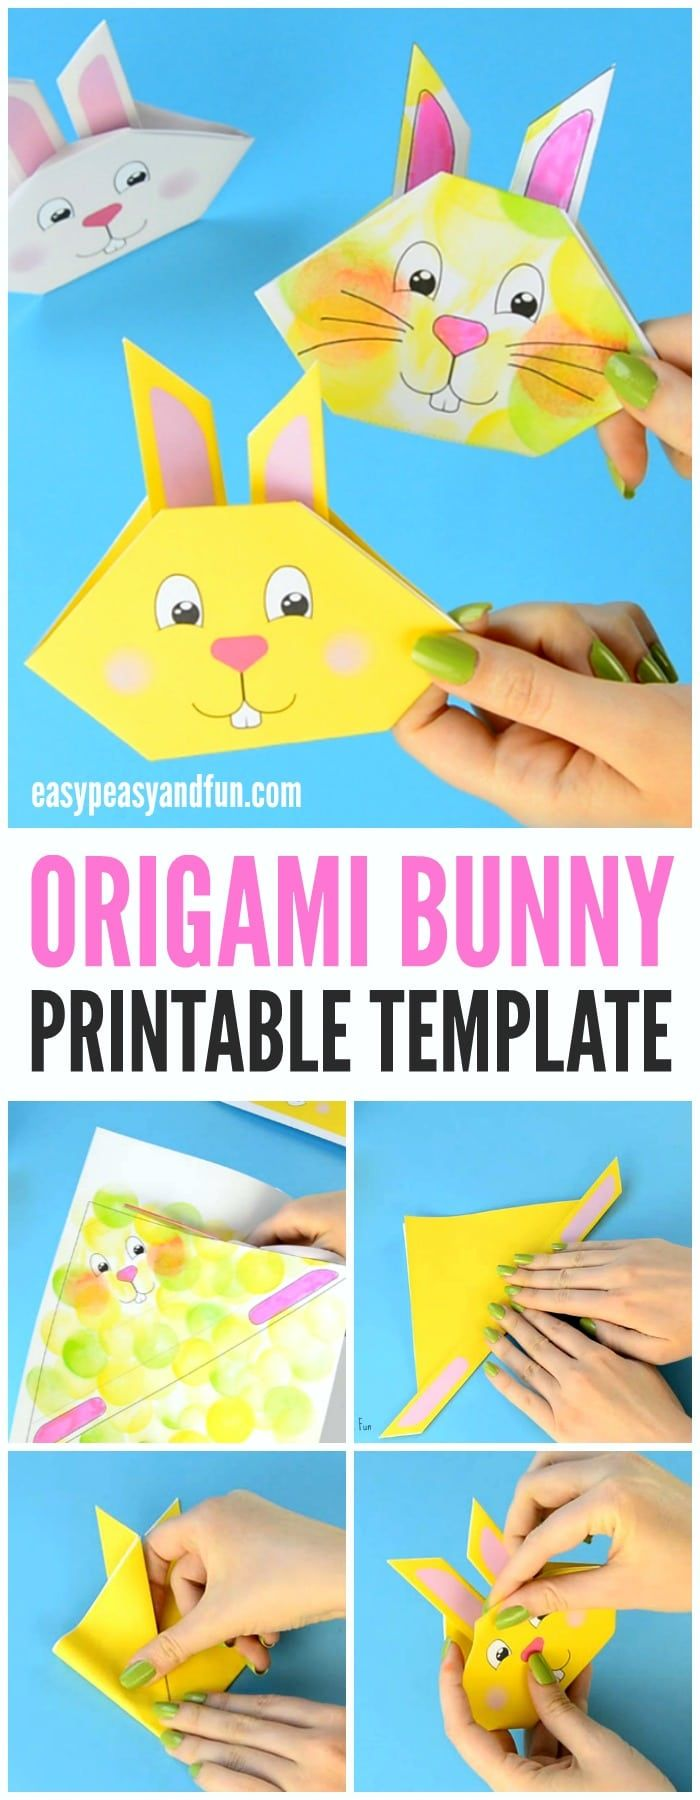 374 best Easter images on Pinterest | Bricolage, Cards and Day care